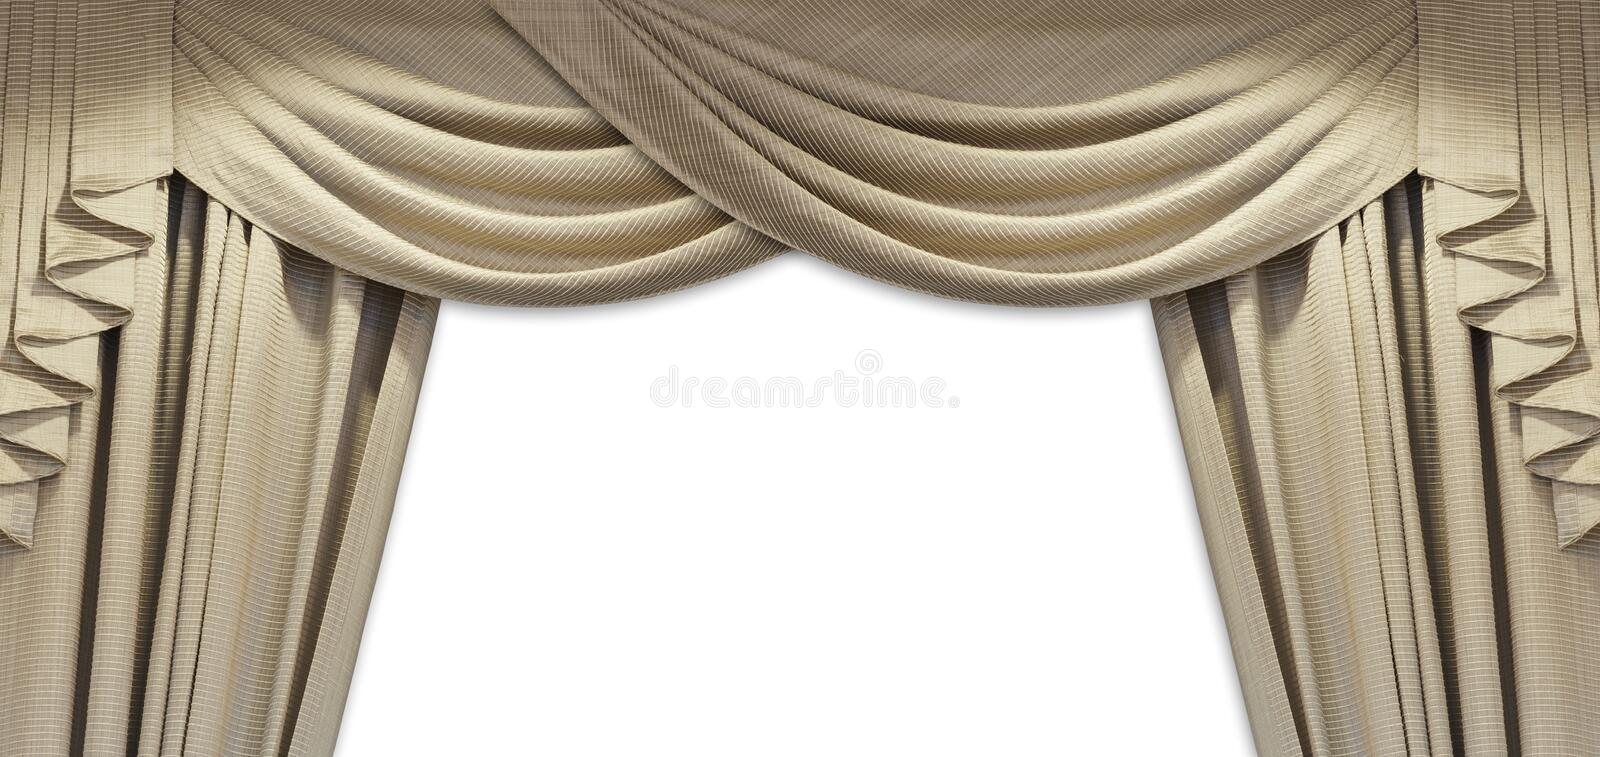 Luxury curtain. For any use royalty free stock photo